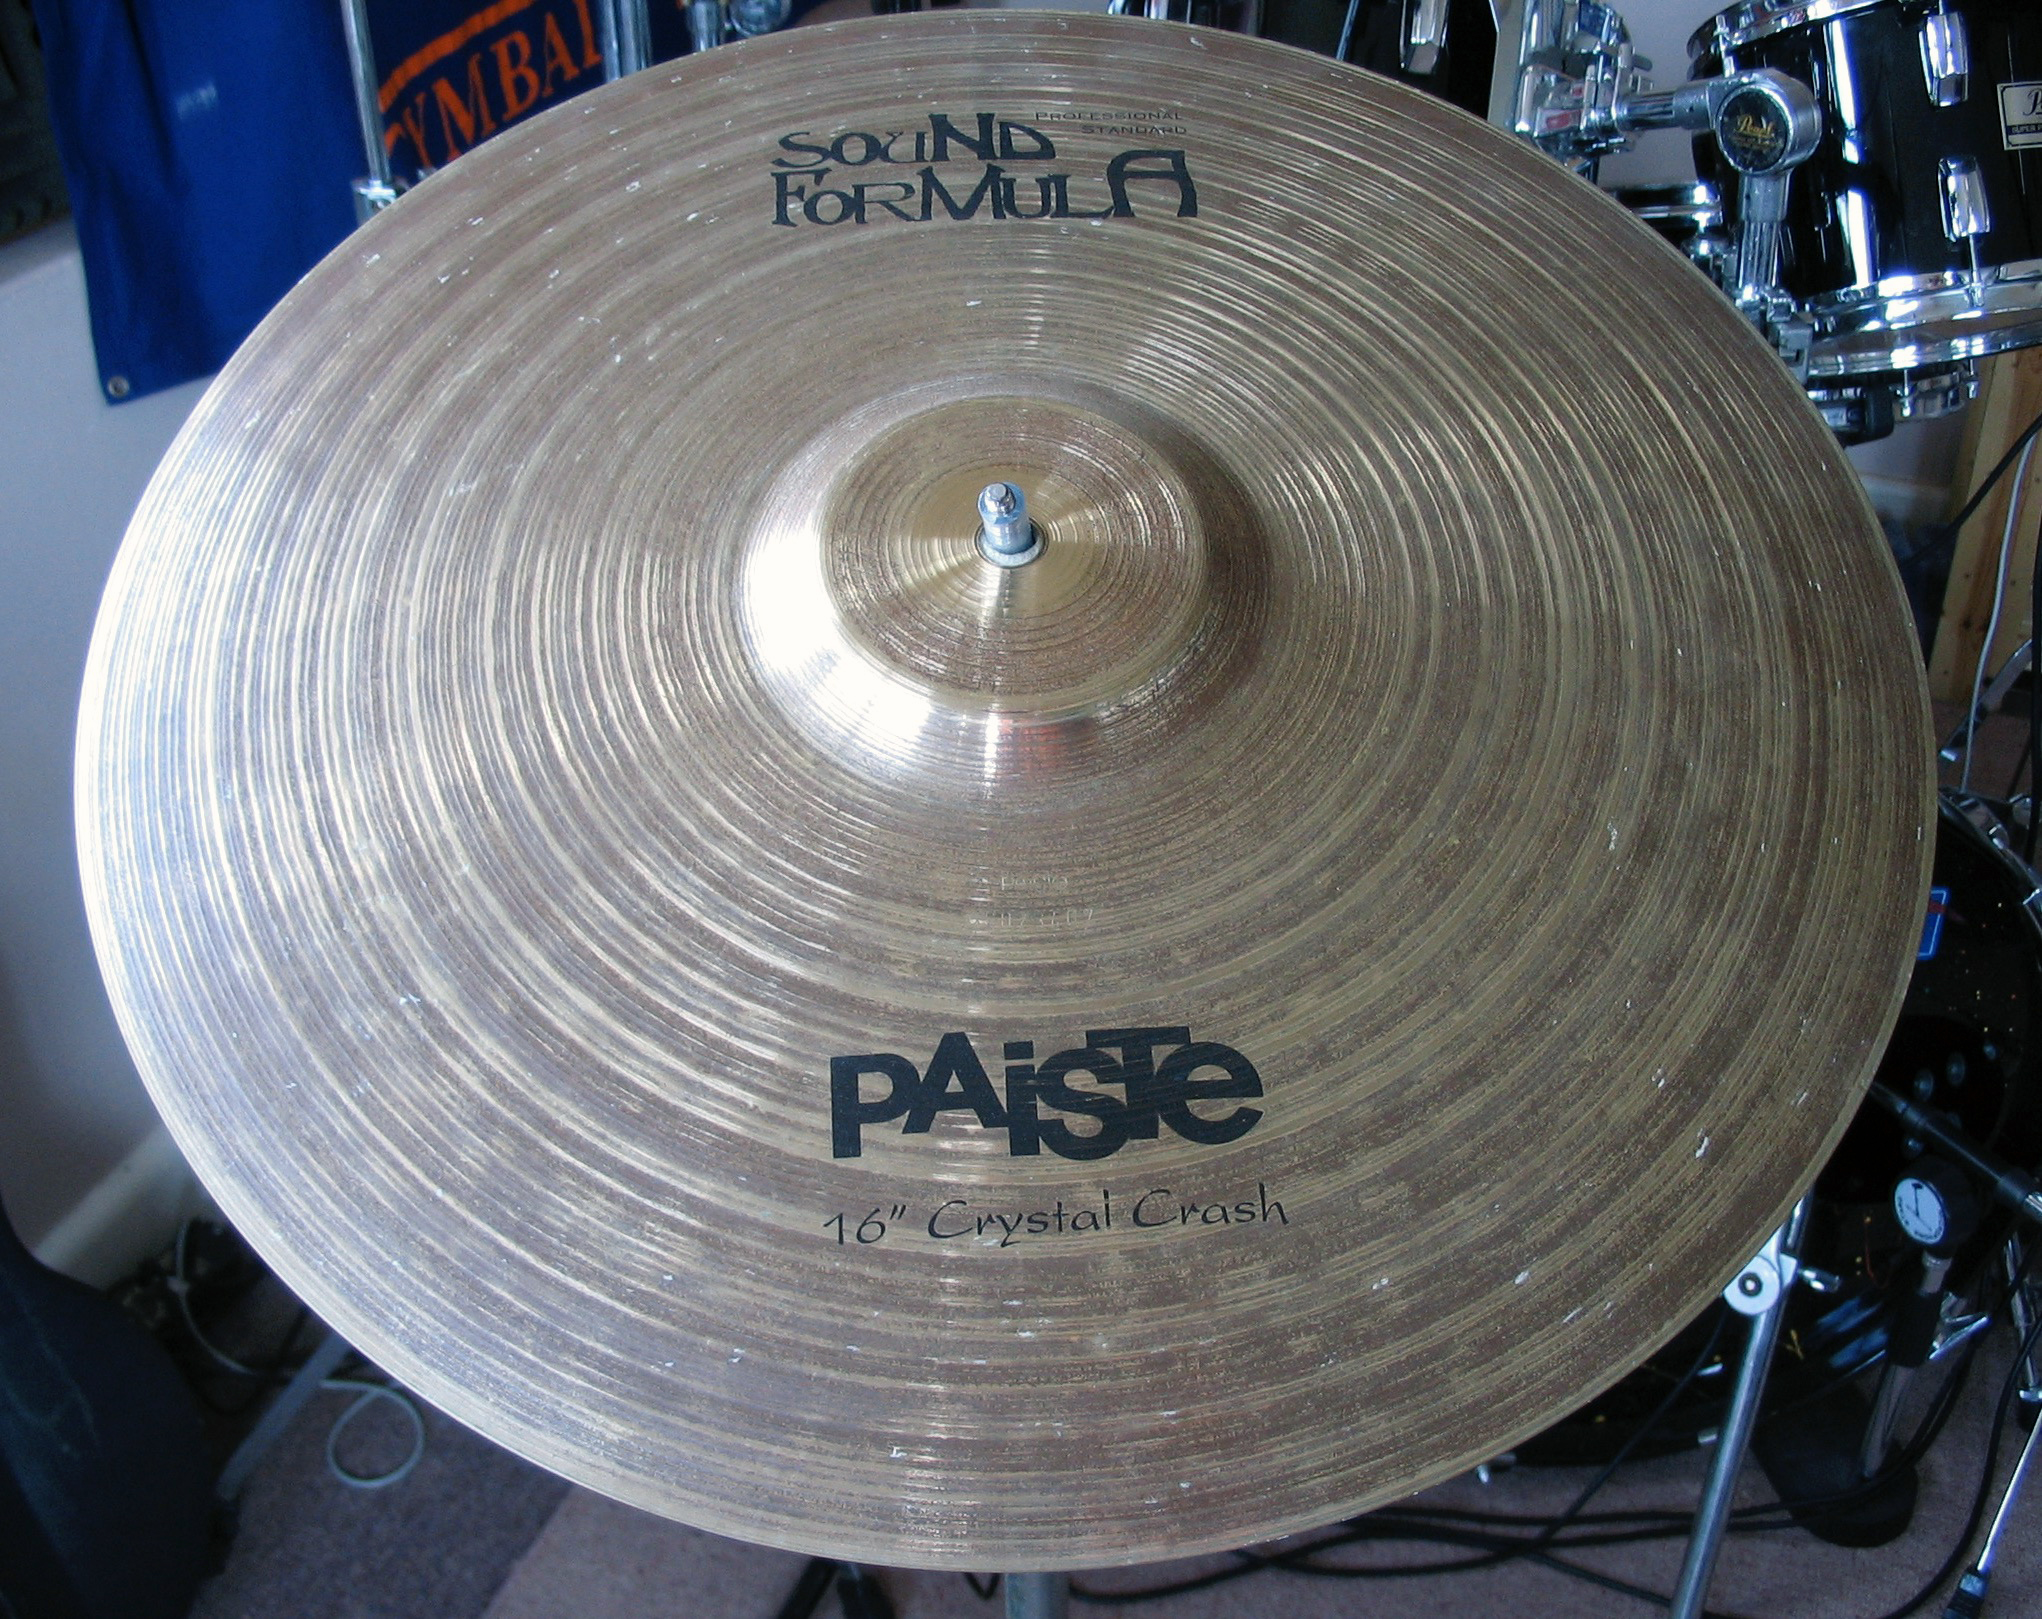 "Sound Formula Crystal Crash 16""."